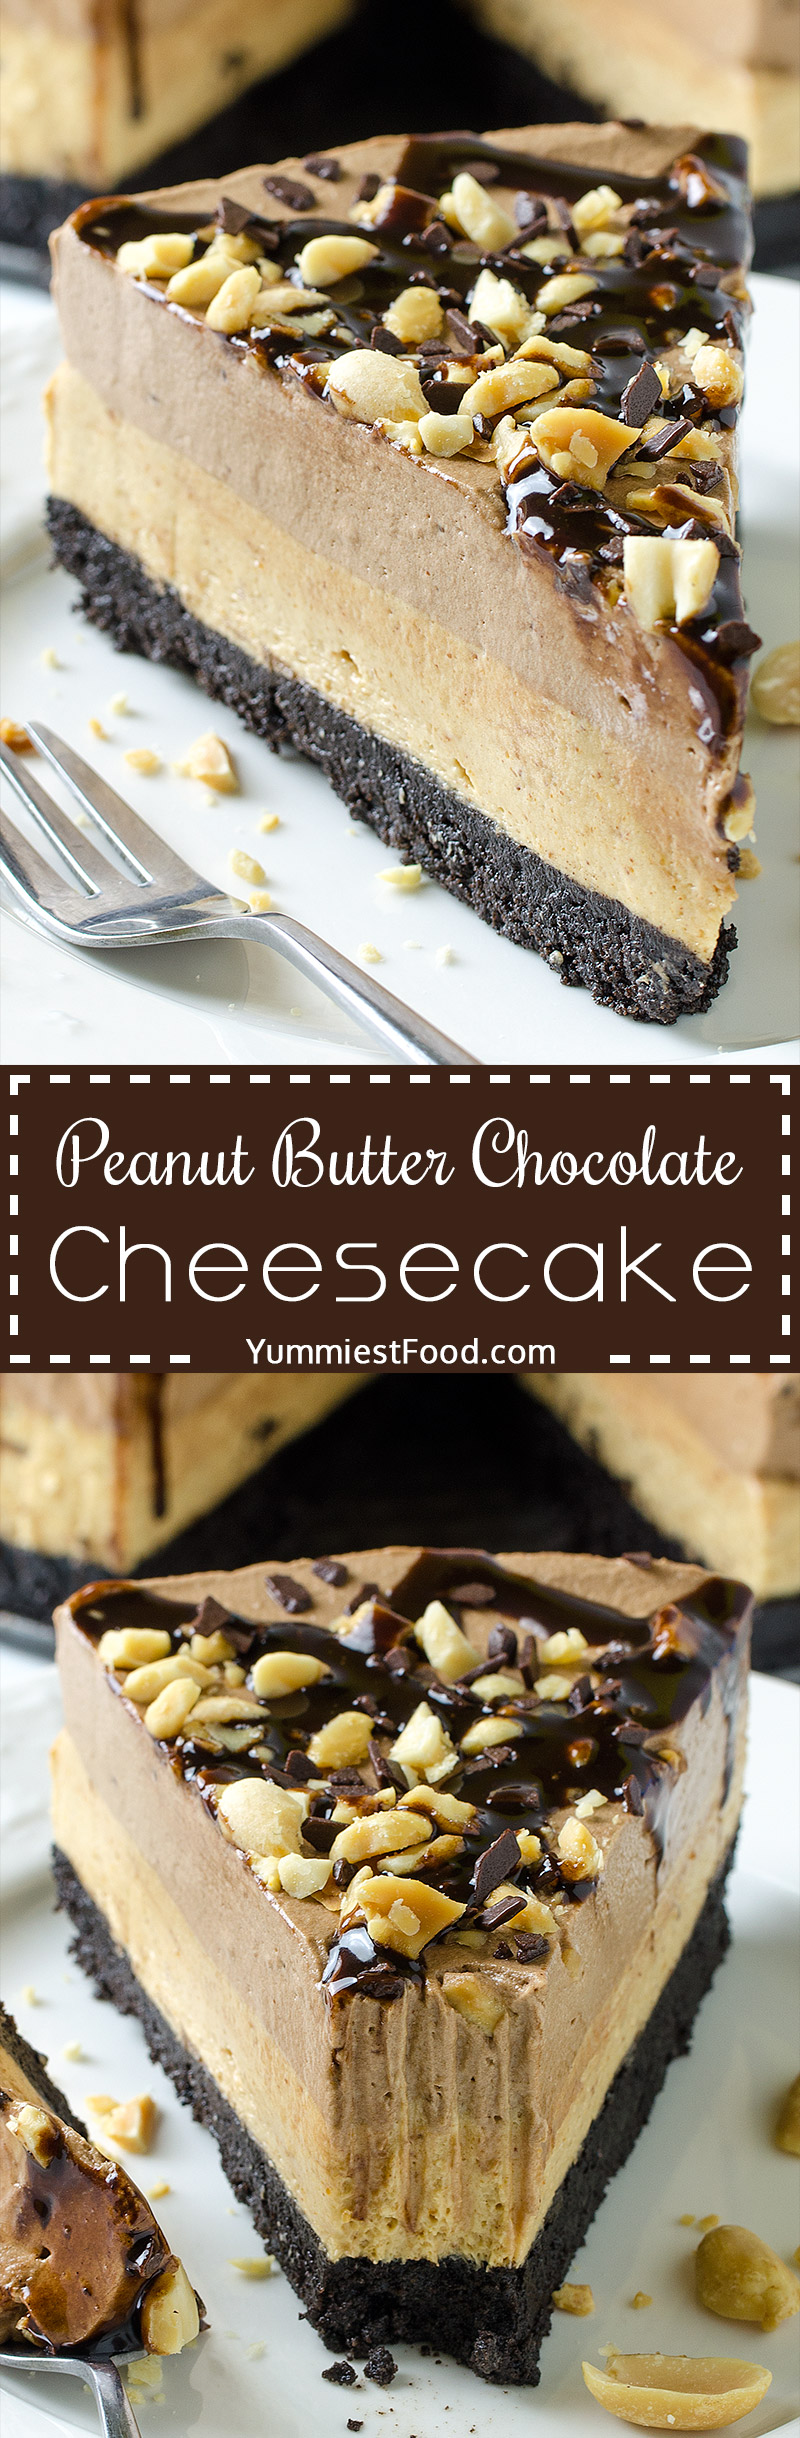 PEANUT BUTTER CHOCOLATE CHEESECAKE - NO BAKE - is a quick and easy Oreo, peanut butter and chocolate dessert recipe, perfect for summer and anytime you need no-bake dessert